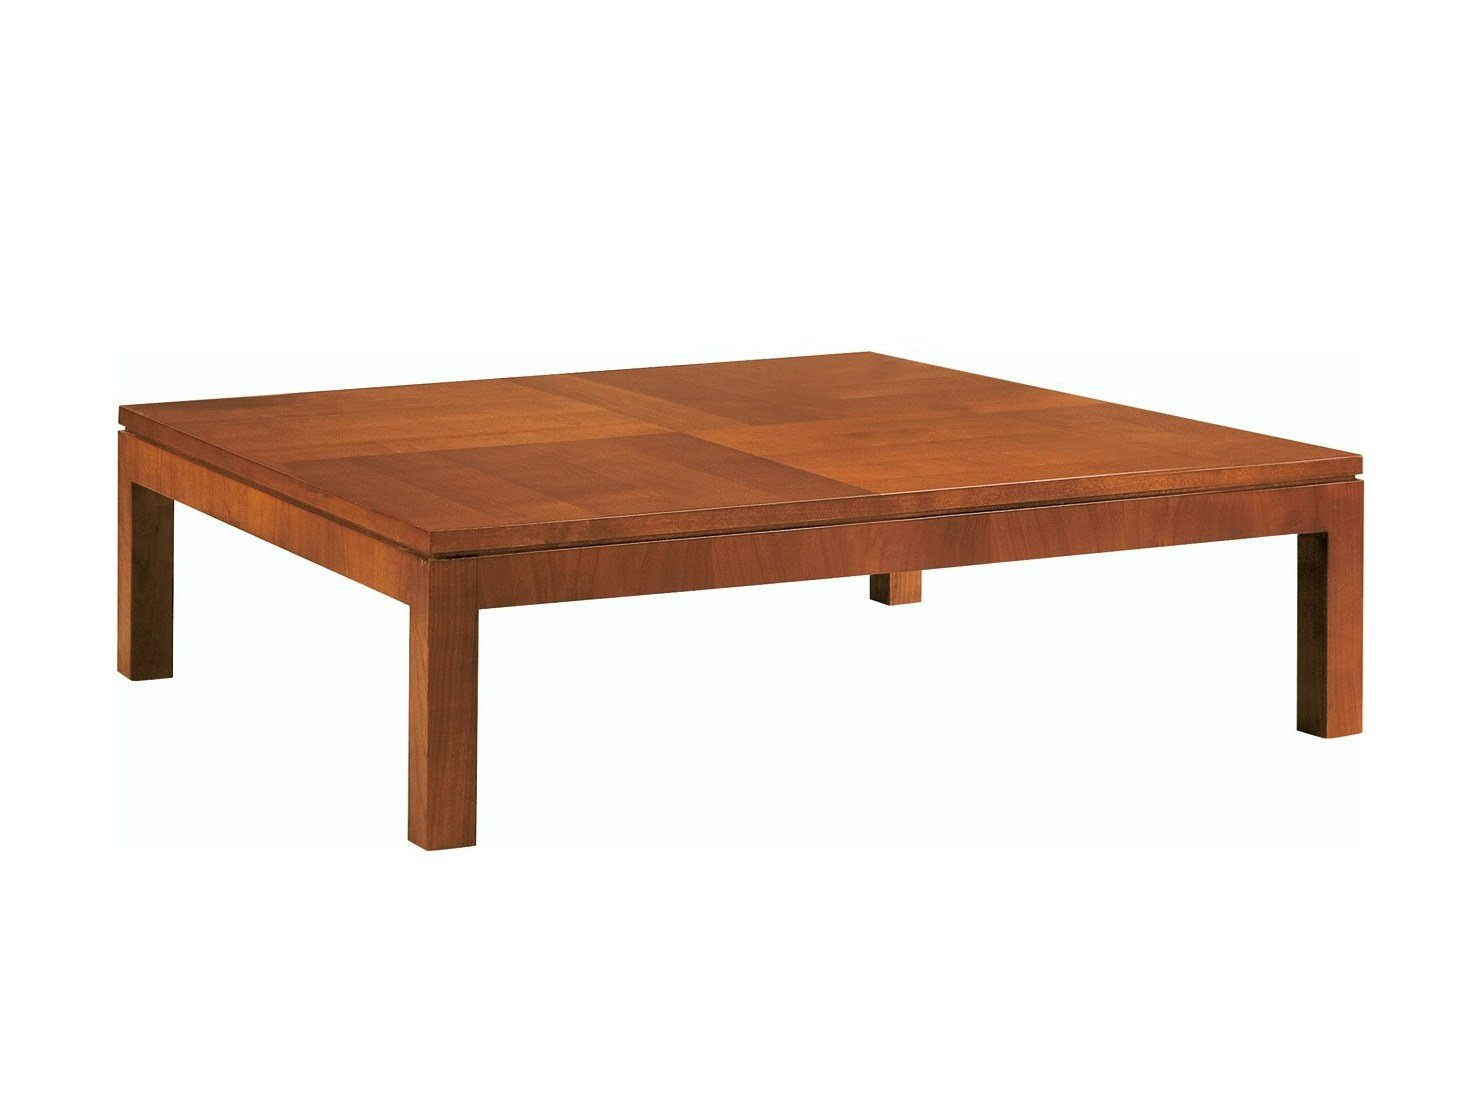 Cherry Wood Coffee Table Bob By Morelato Design Centro Ricerche Maam